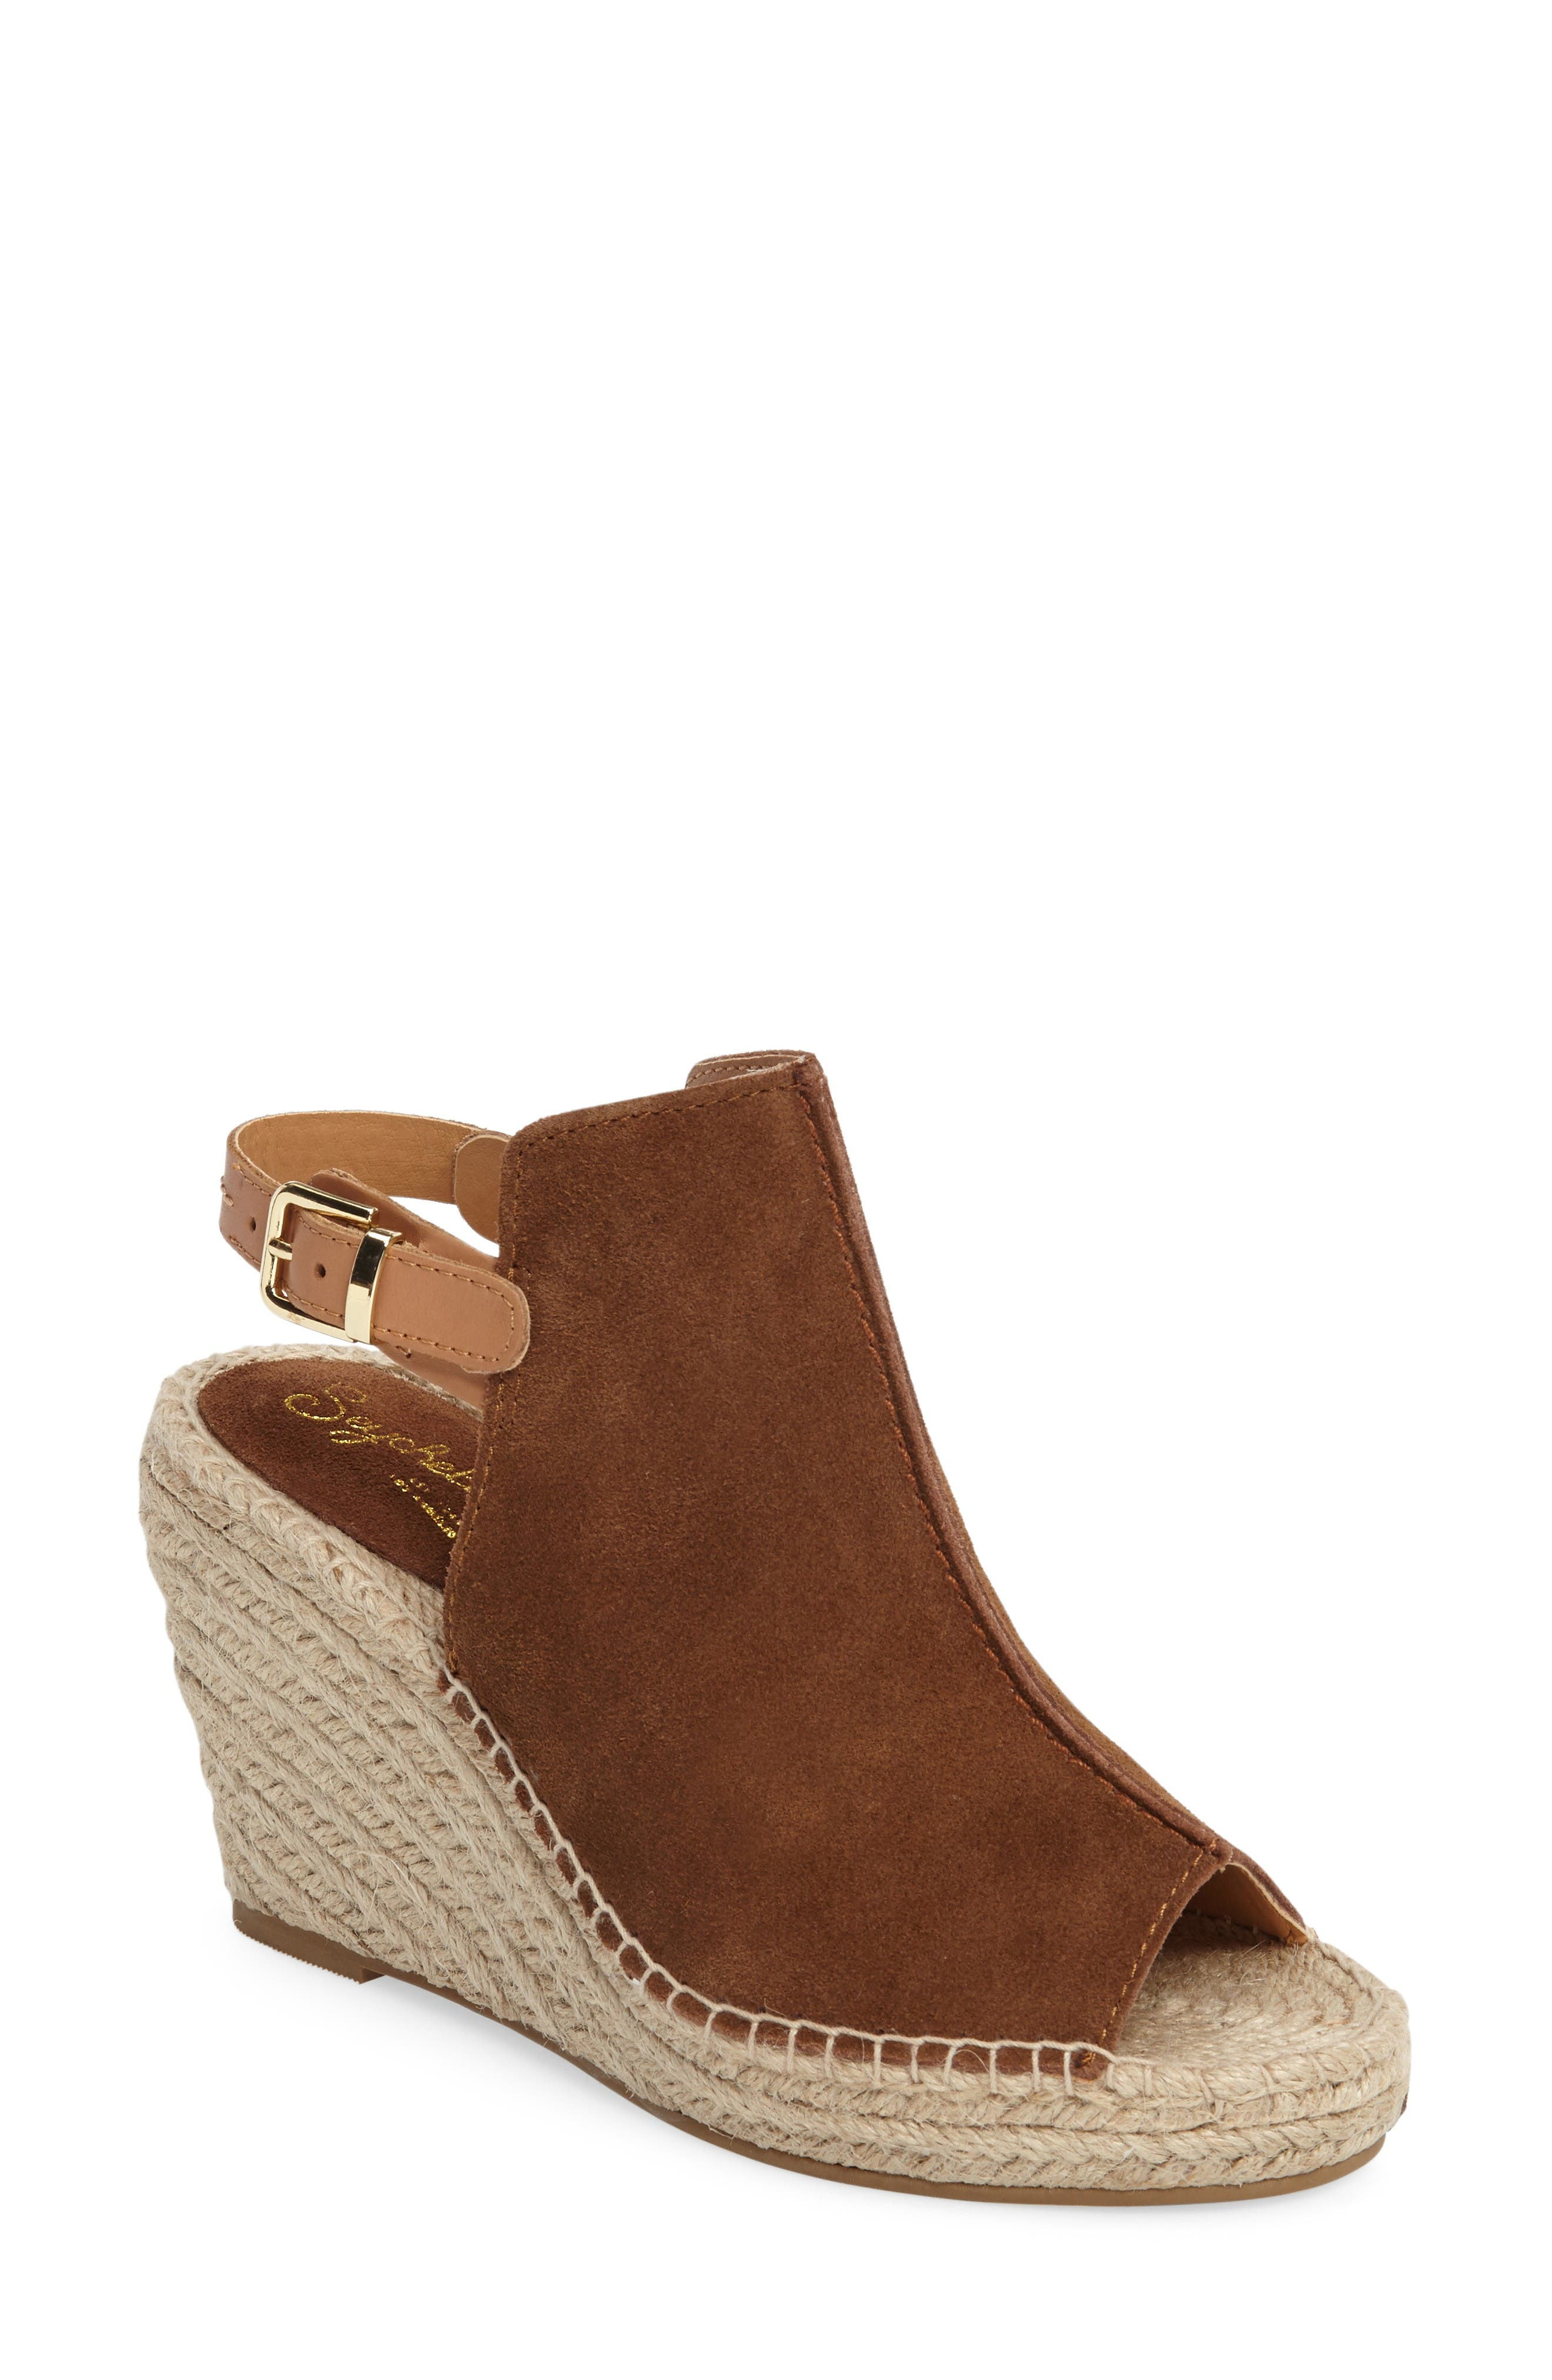 SEYCHELLES 'Charismatic' Espadrille Wedge